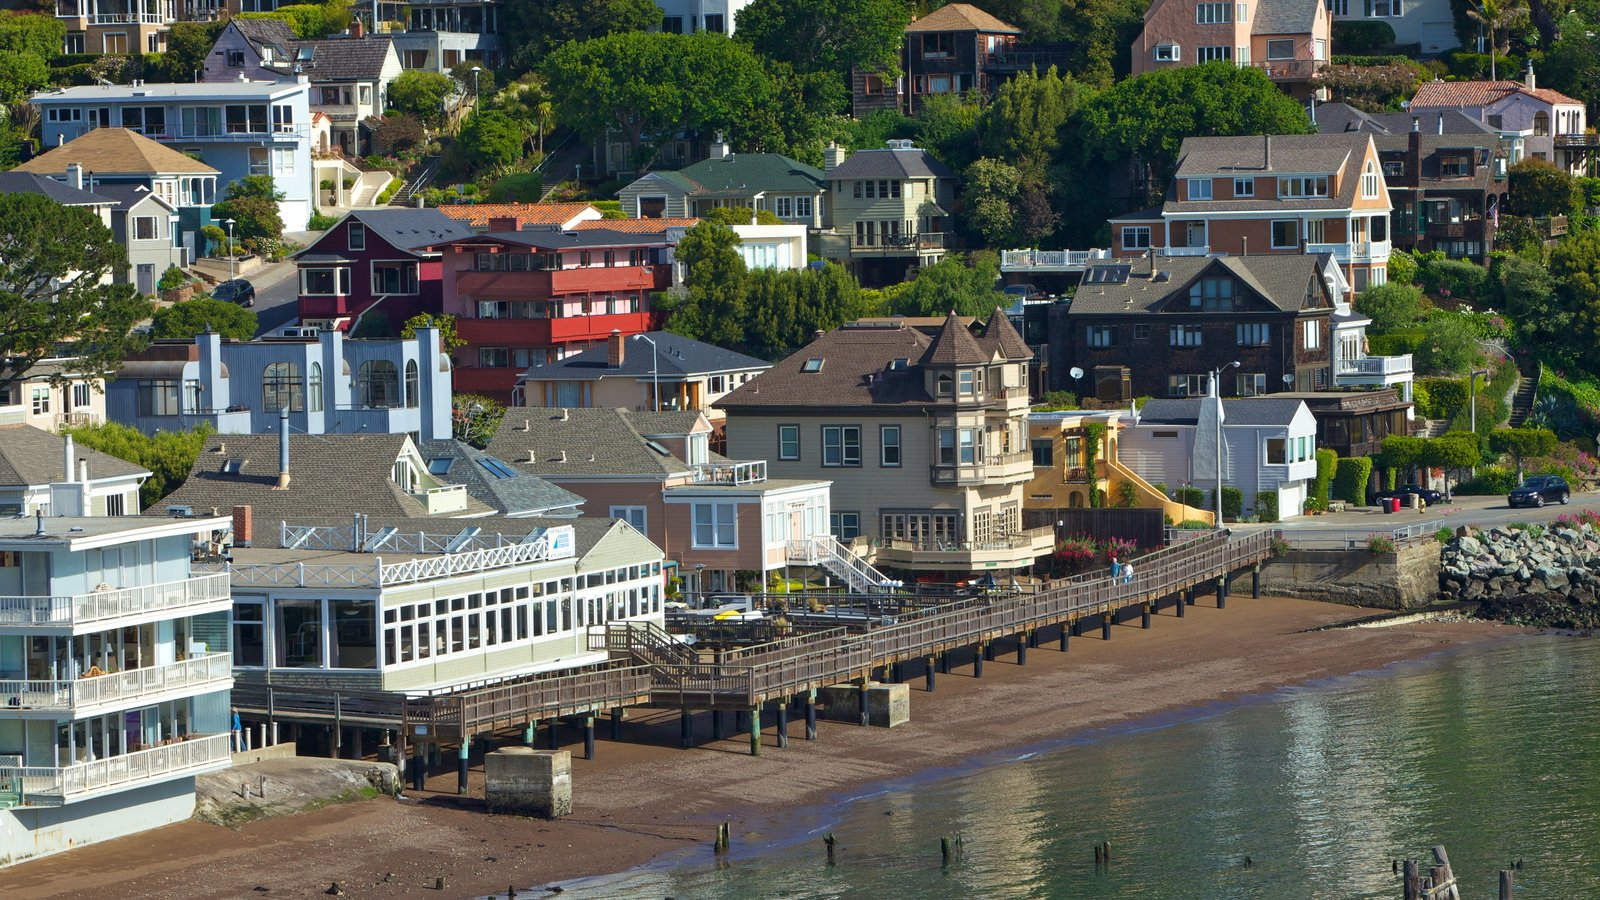 Sausalito which includes a coastal town